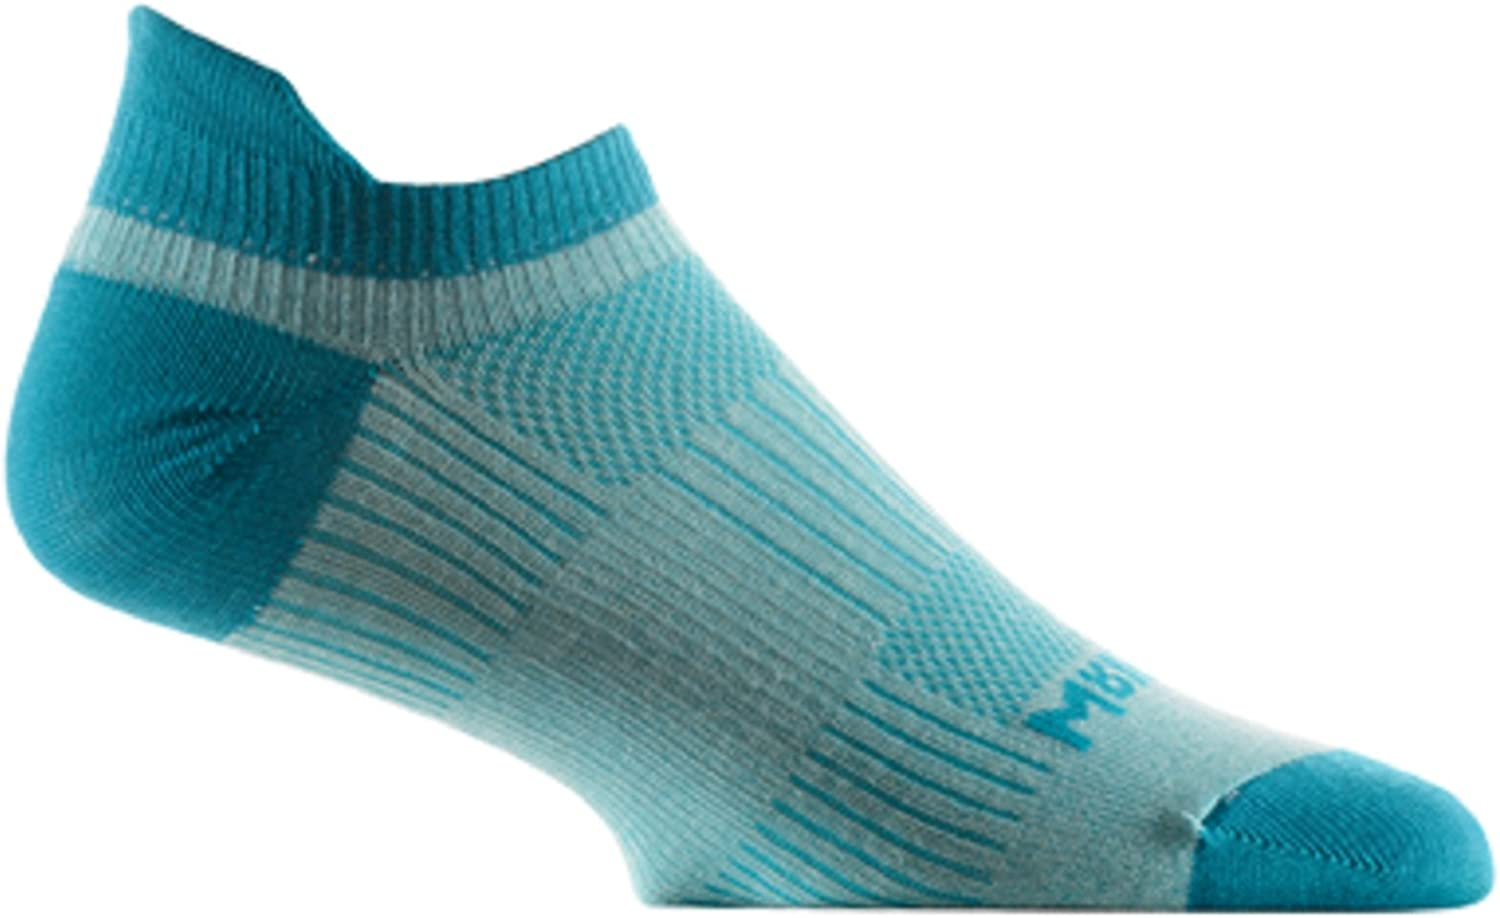 Wrightsock Coolmesh II Tab Running Socks  2 Pack